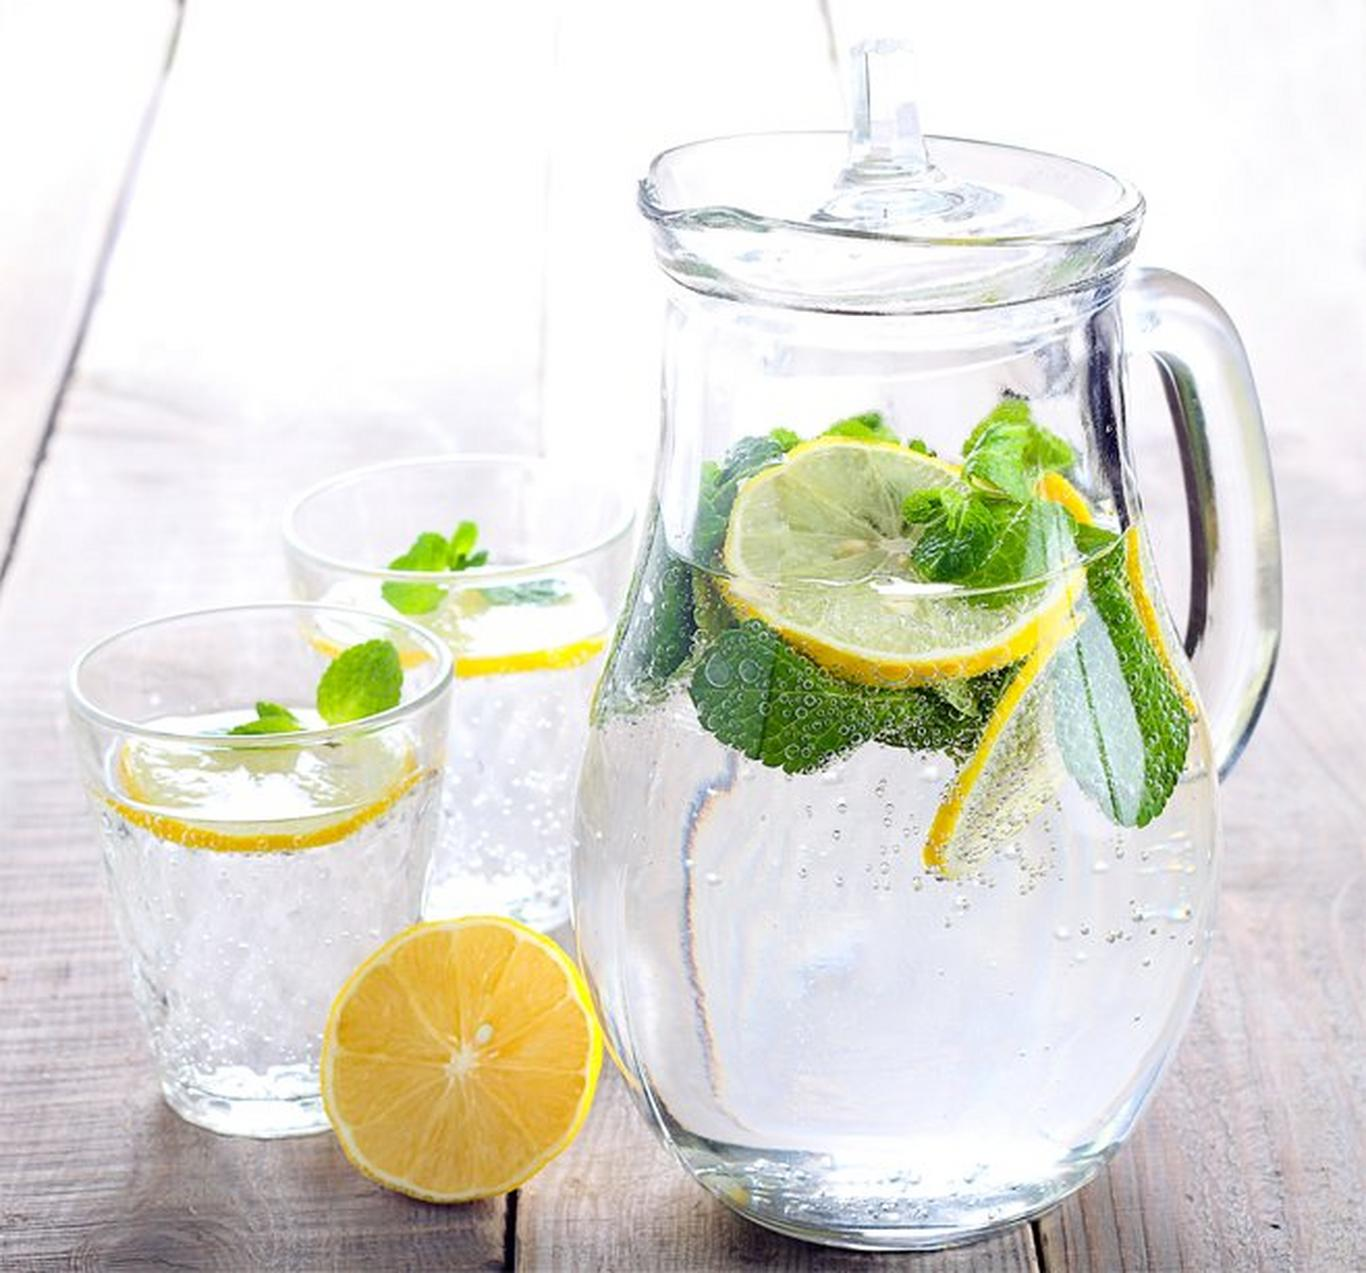 As we age, our cells ability to retain moisture diminishes. Drink 8-10 glasses of water a day for optimal hydration.